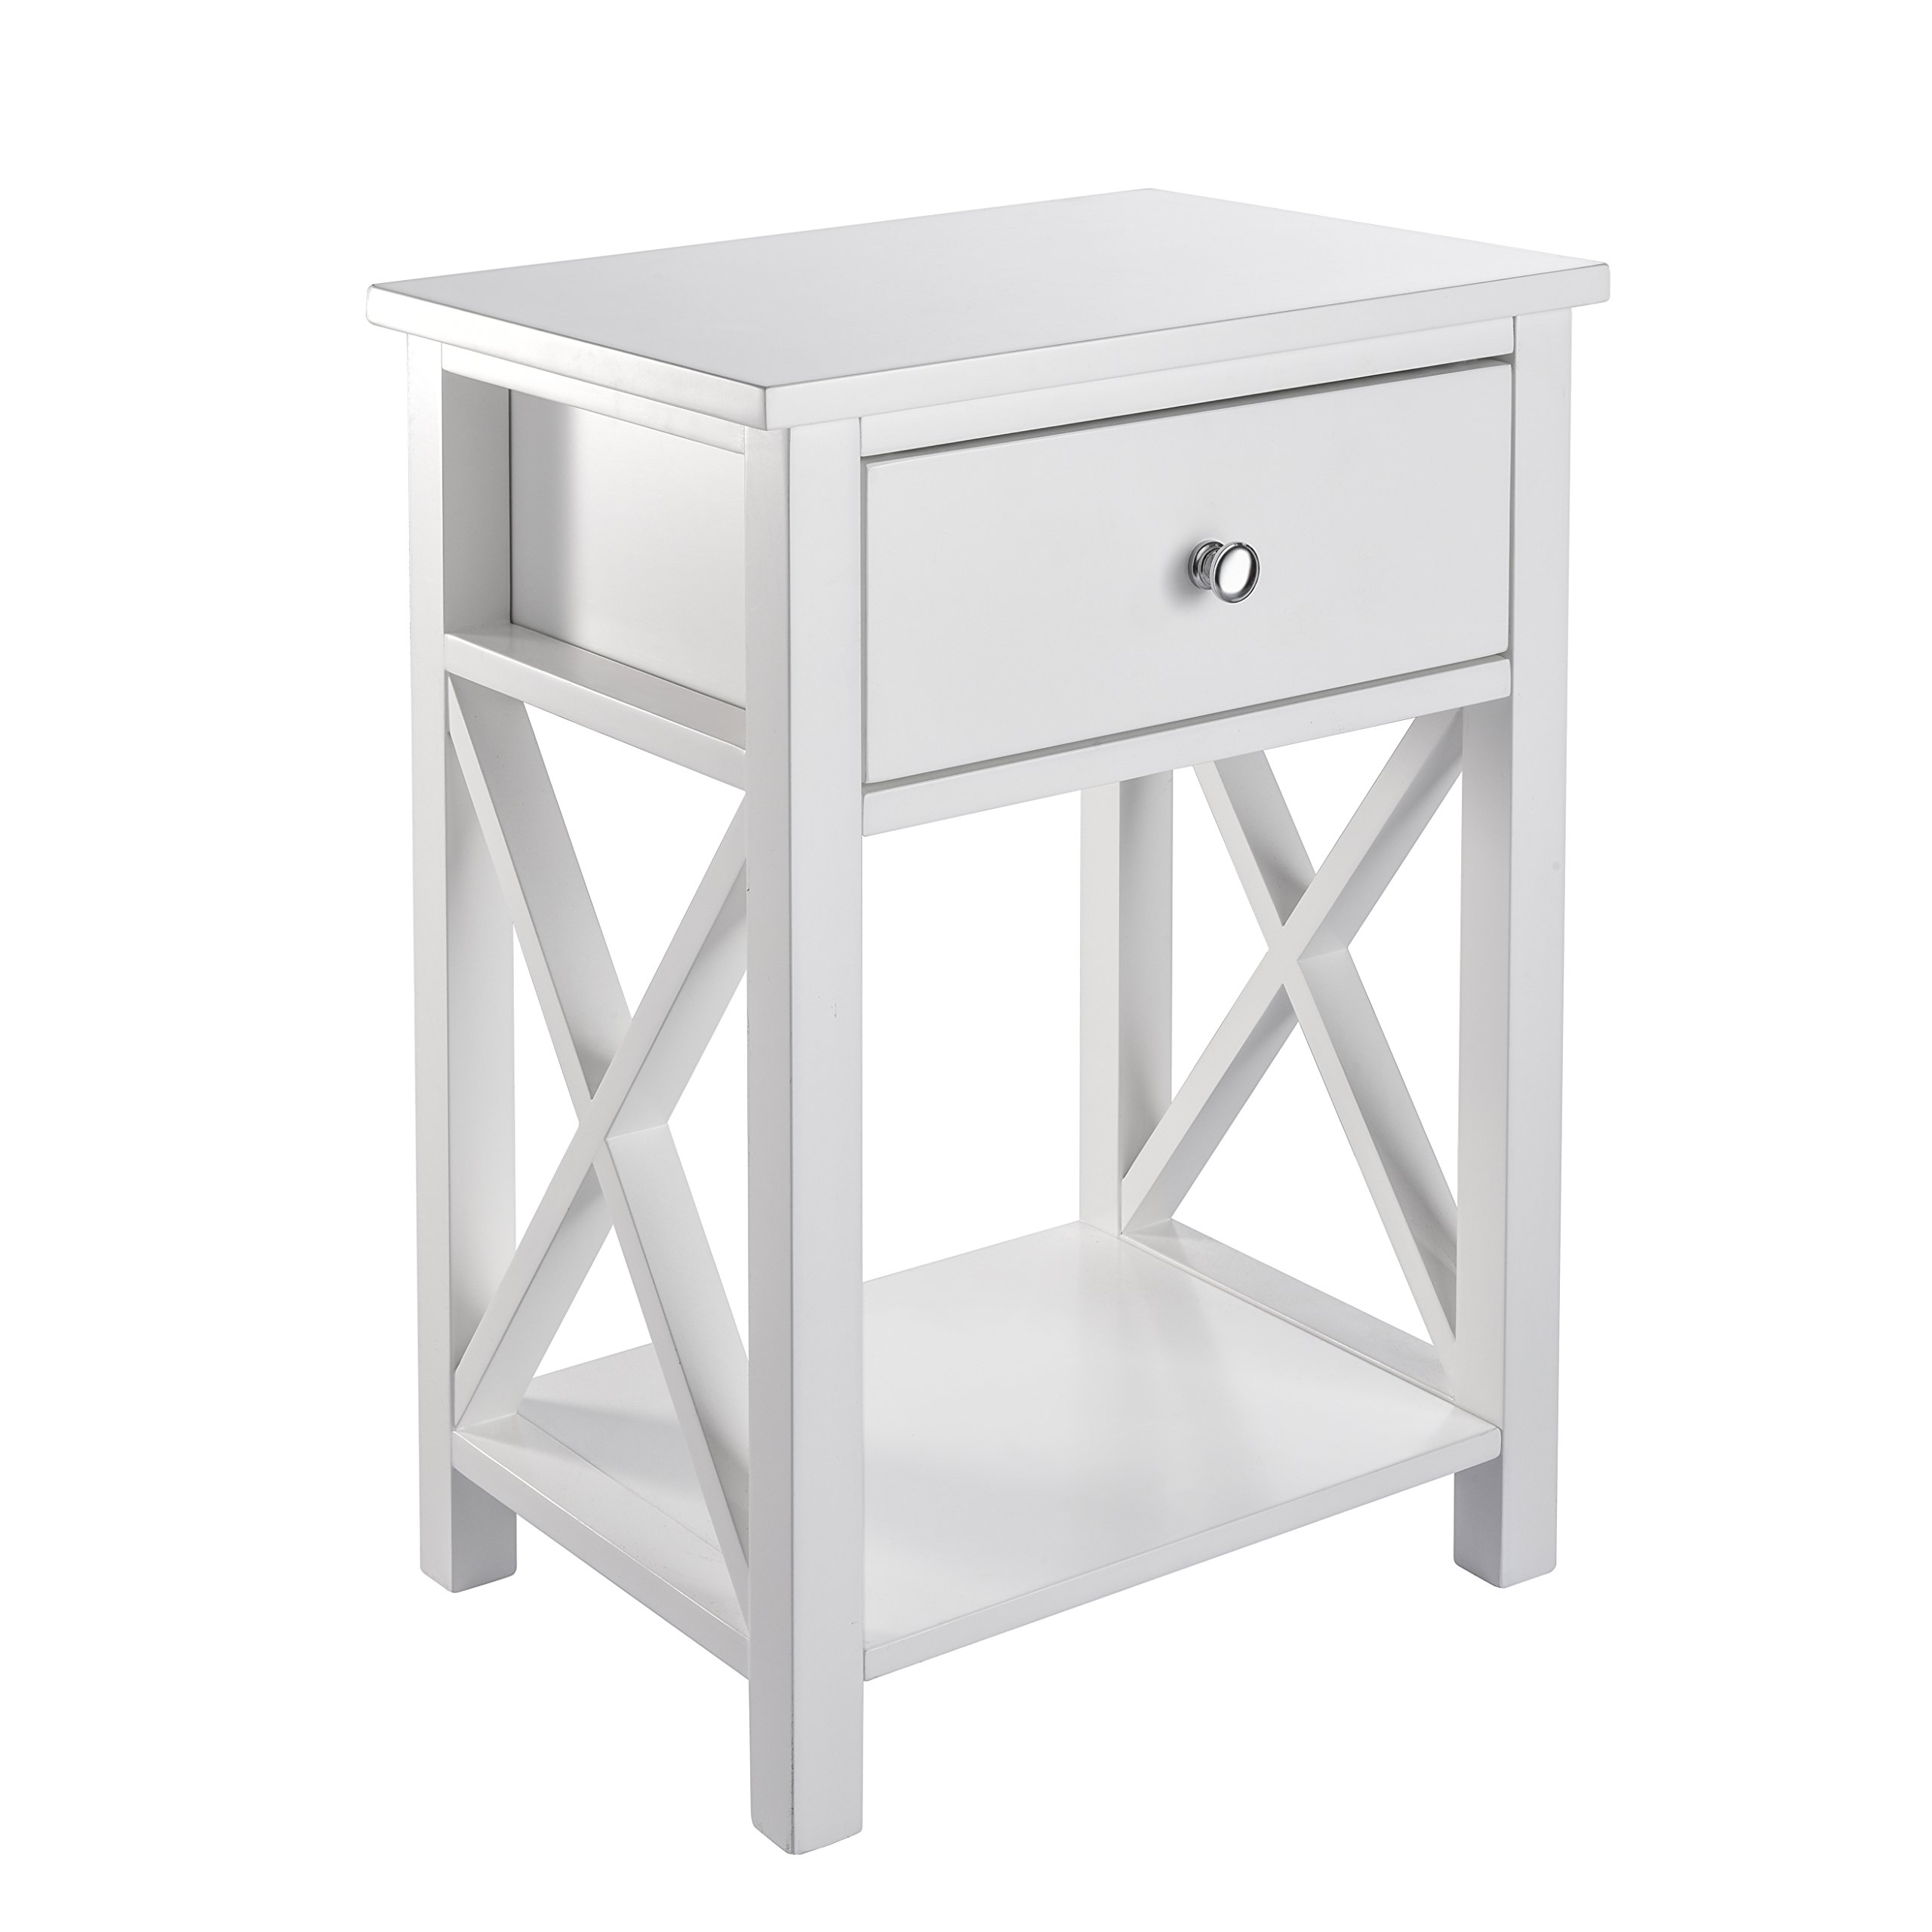 MAGIC UNION X-Design Side End Table Night Stand Storage Shelf with Bin Drawer by MAGIC UNION